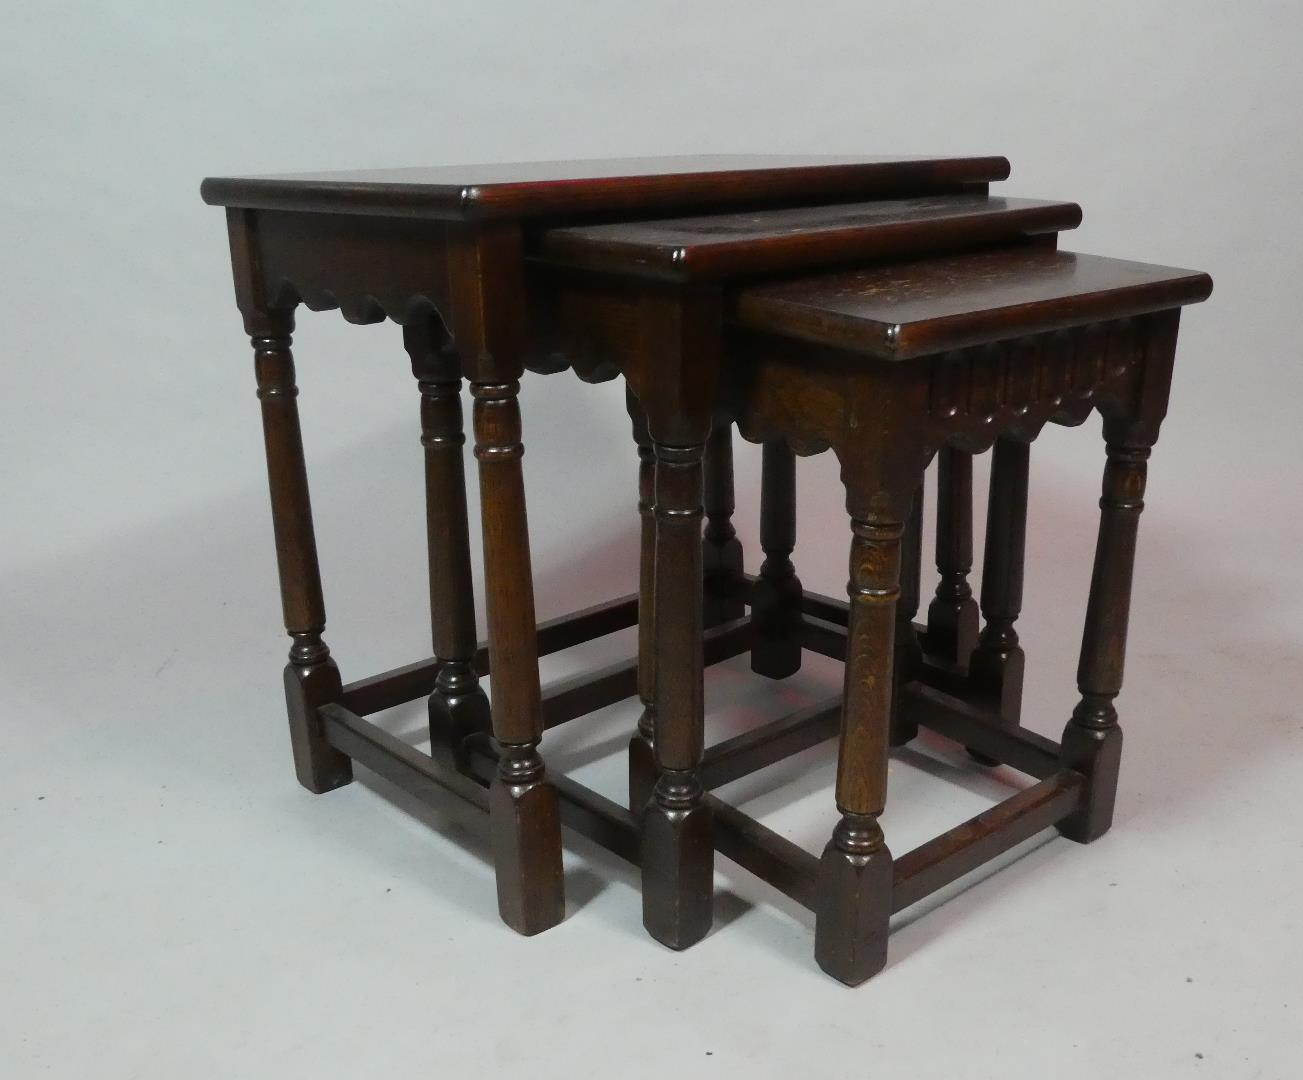 A Small Late 20th Century Oak Nest of Tables - Image 2 of 2